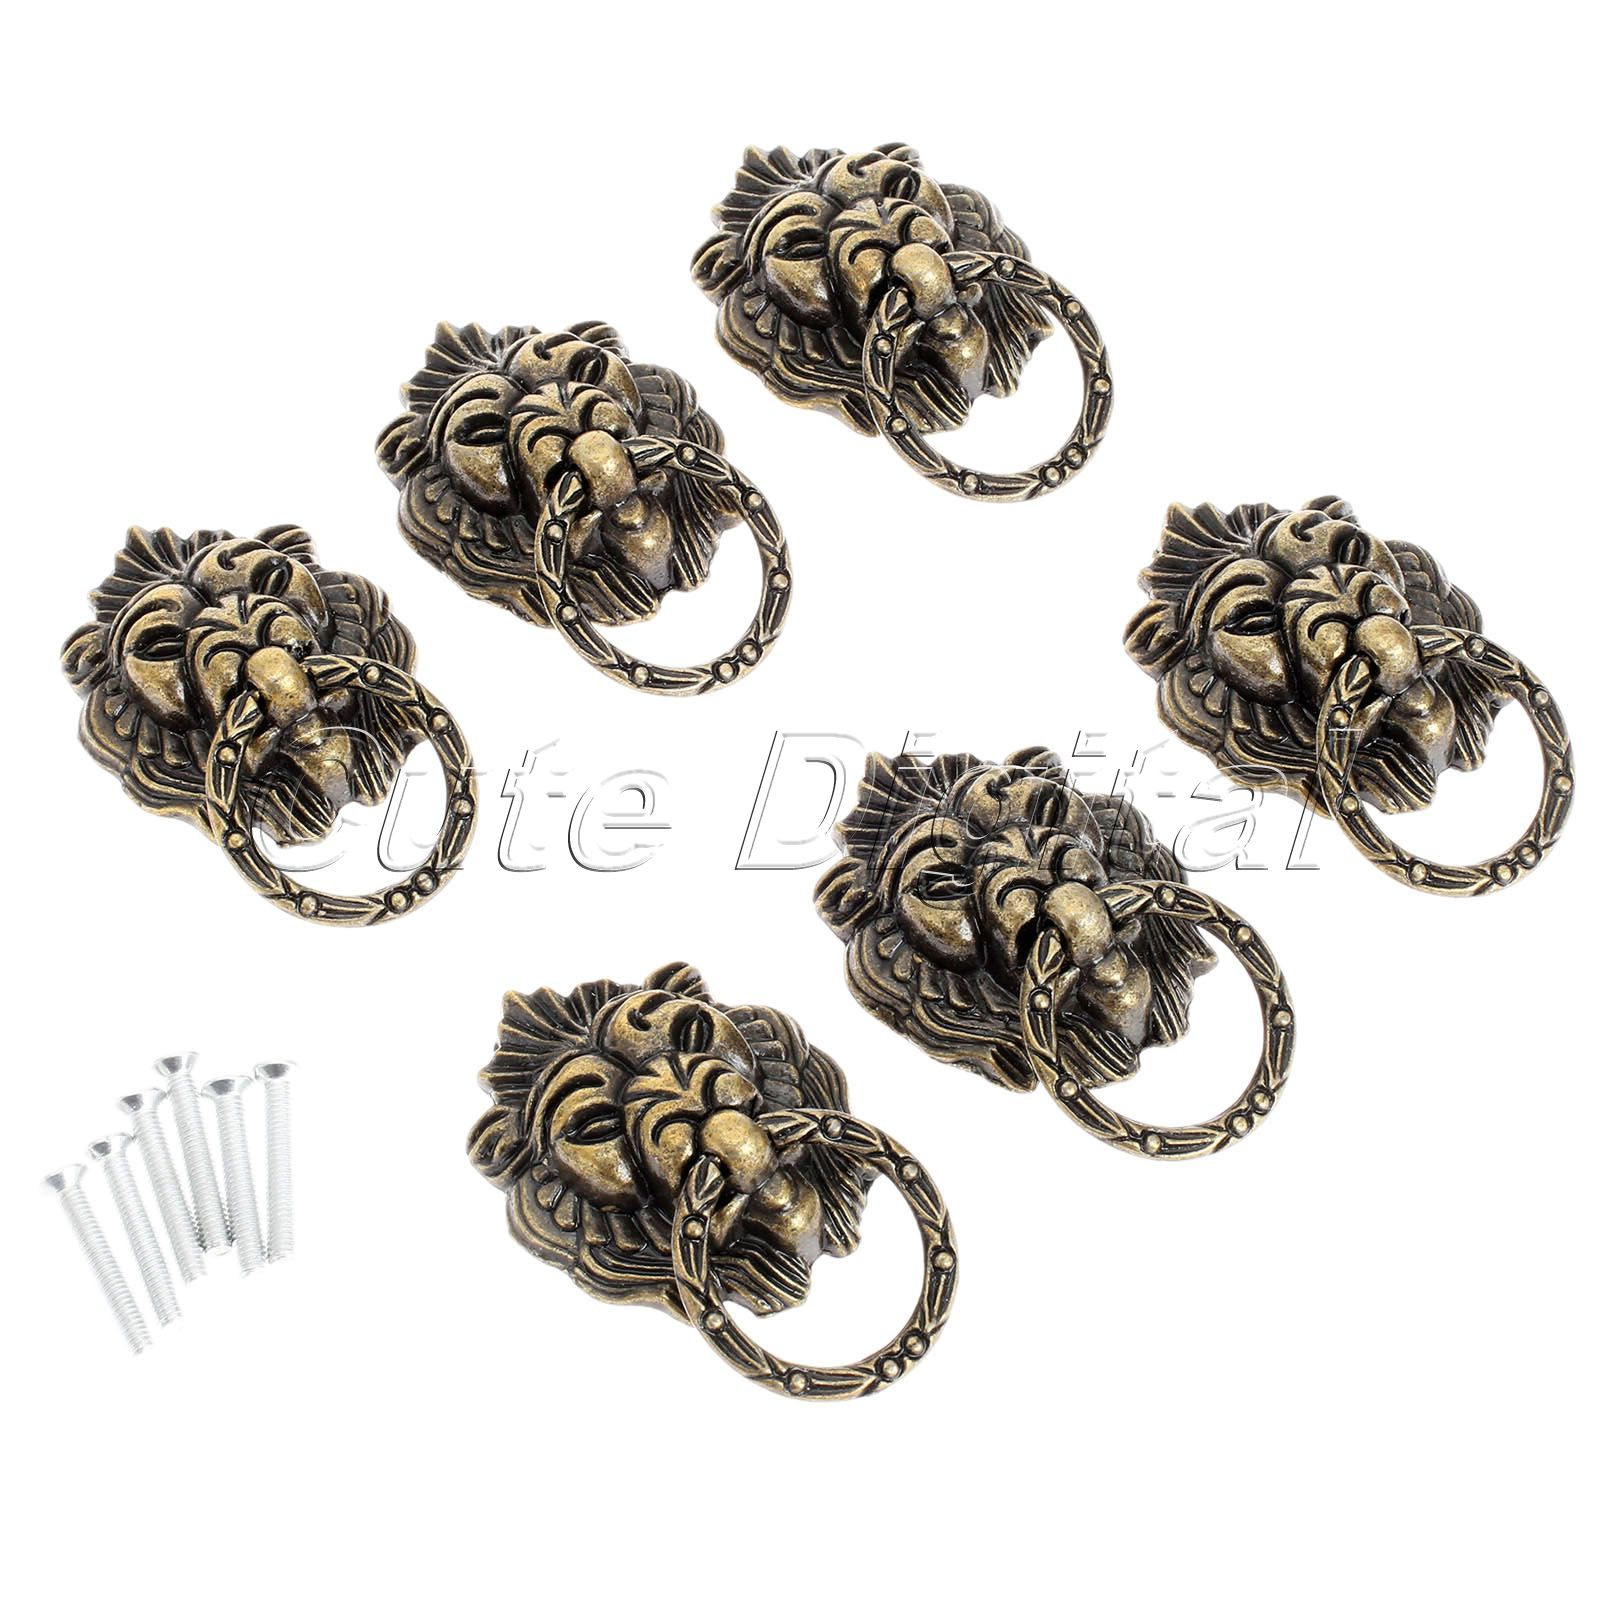 6pcs Bronze chinese door handle wardrobe handle Kitchen knobs Cabinet Hardware vintage handles Decorative Knob asas para cajones 6pcs bronze chinese door handle wardrobe handle kitchen knobs cabinet hardware vintage handles decorative knob asas para cajones